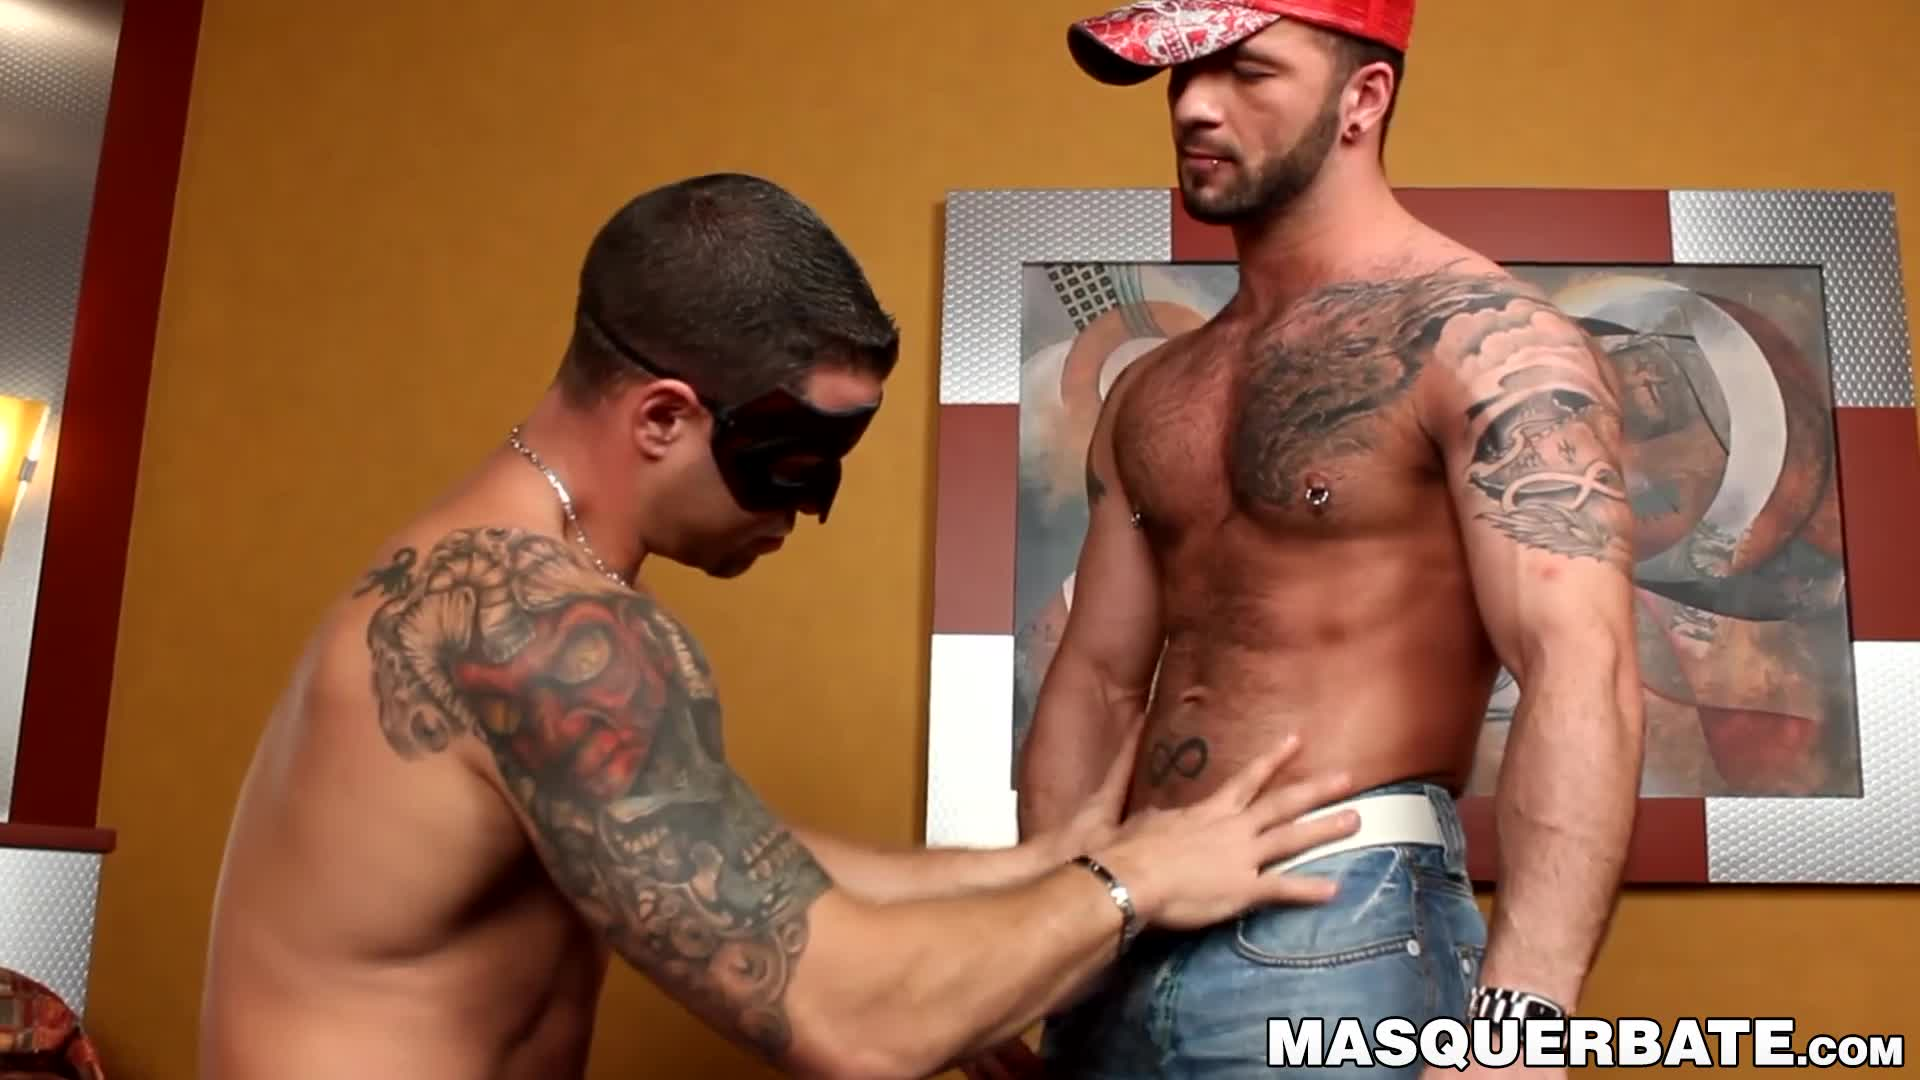 William fuck Manuel DeBoxer Maskurbate